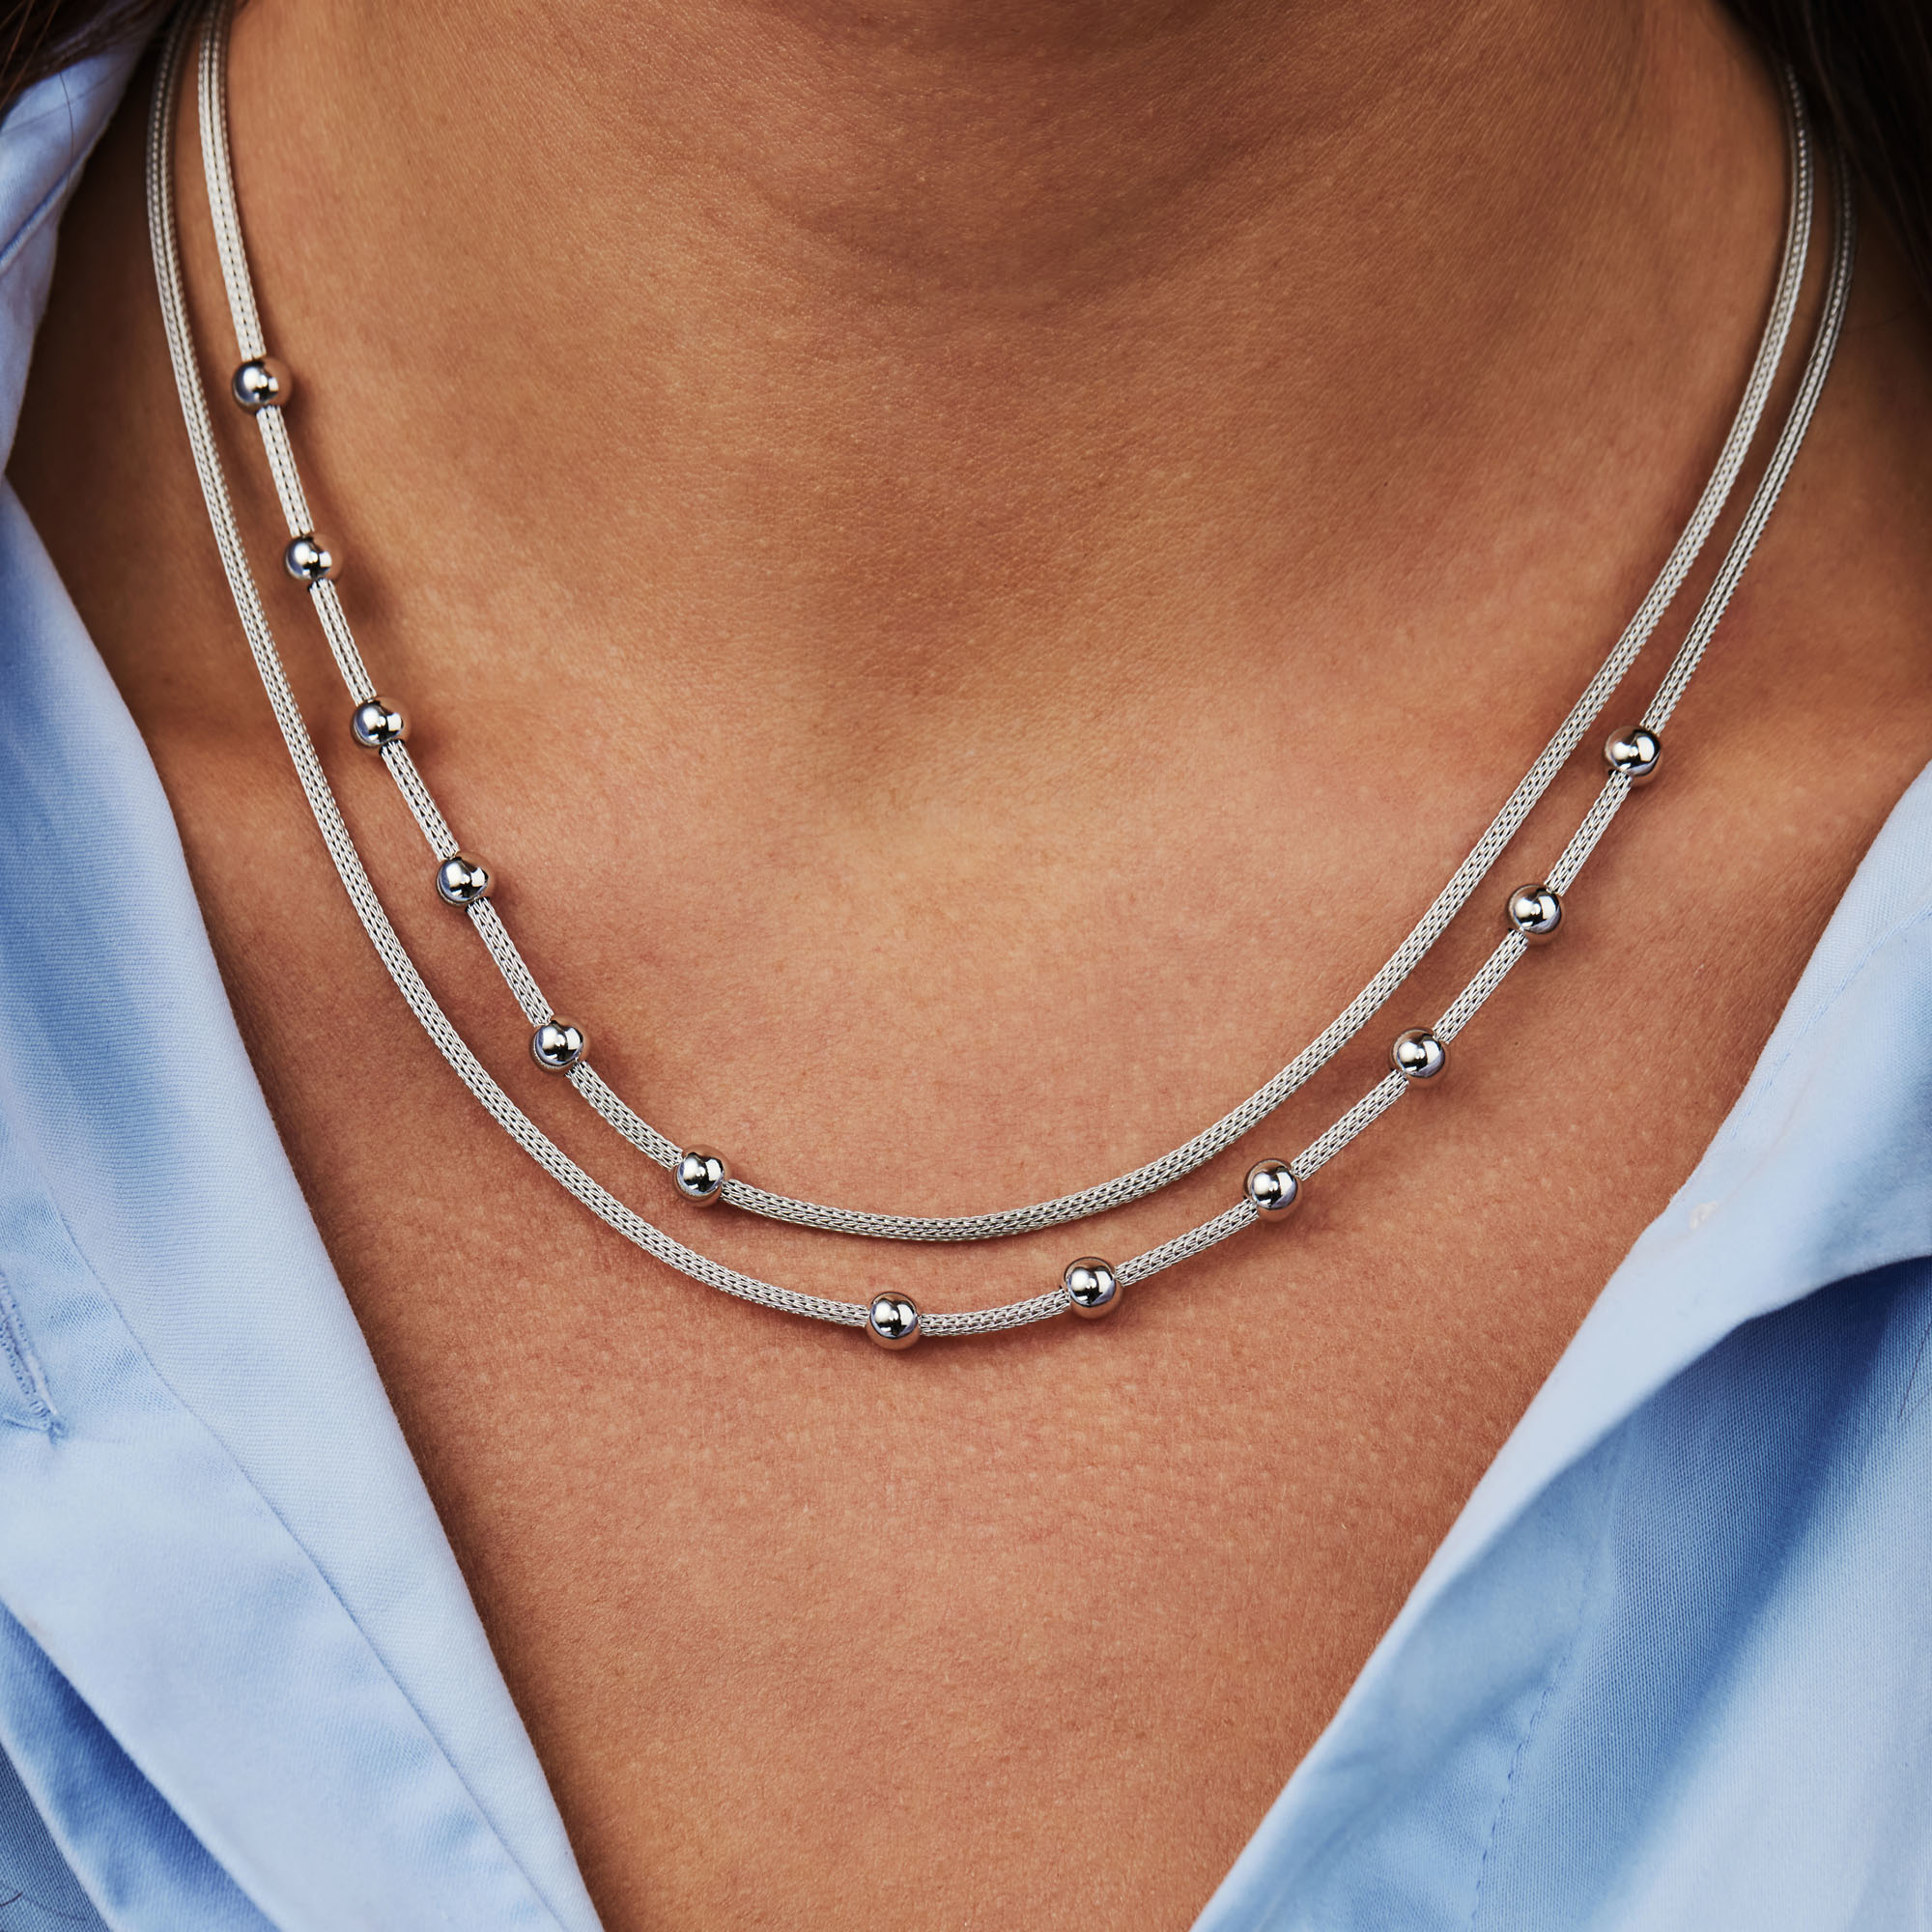 Selected Jewels Léna Nina 925 sterling silver necklace with spheres